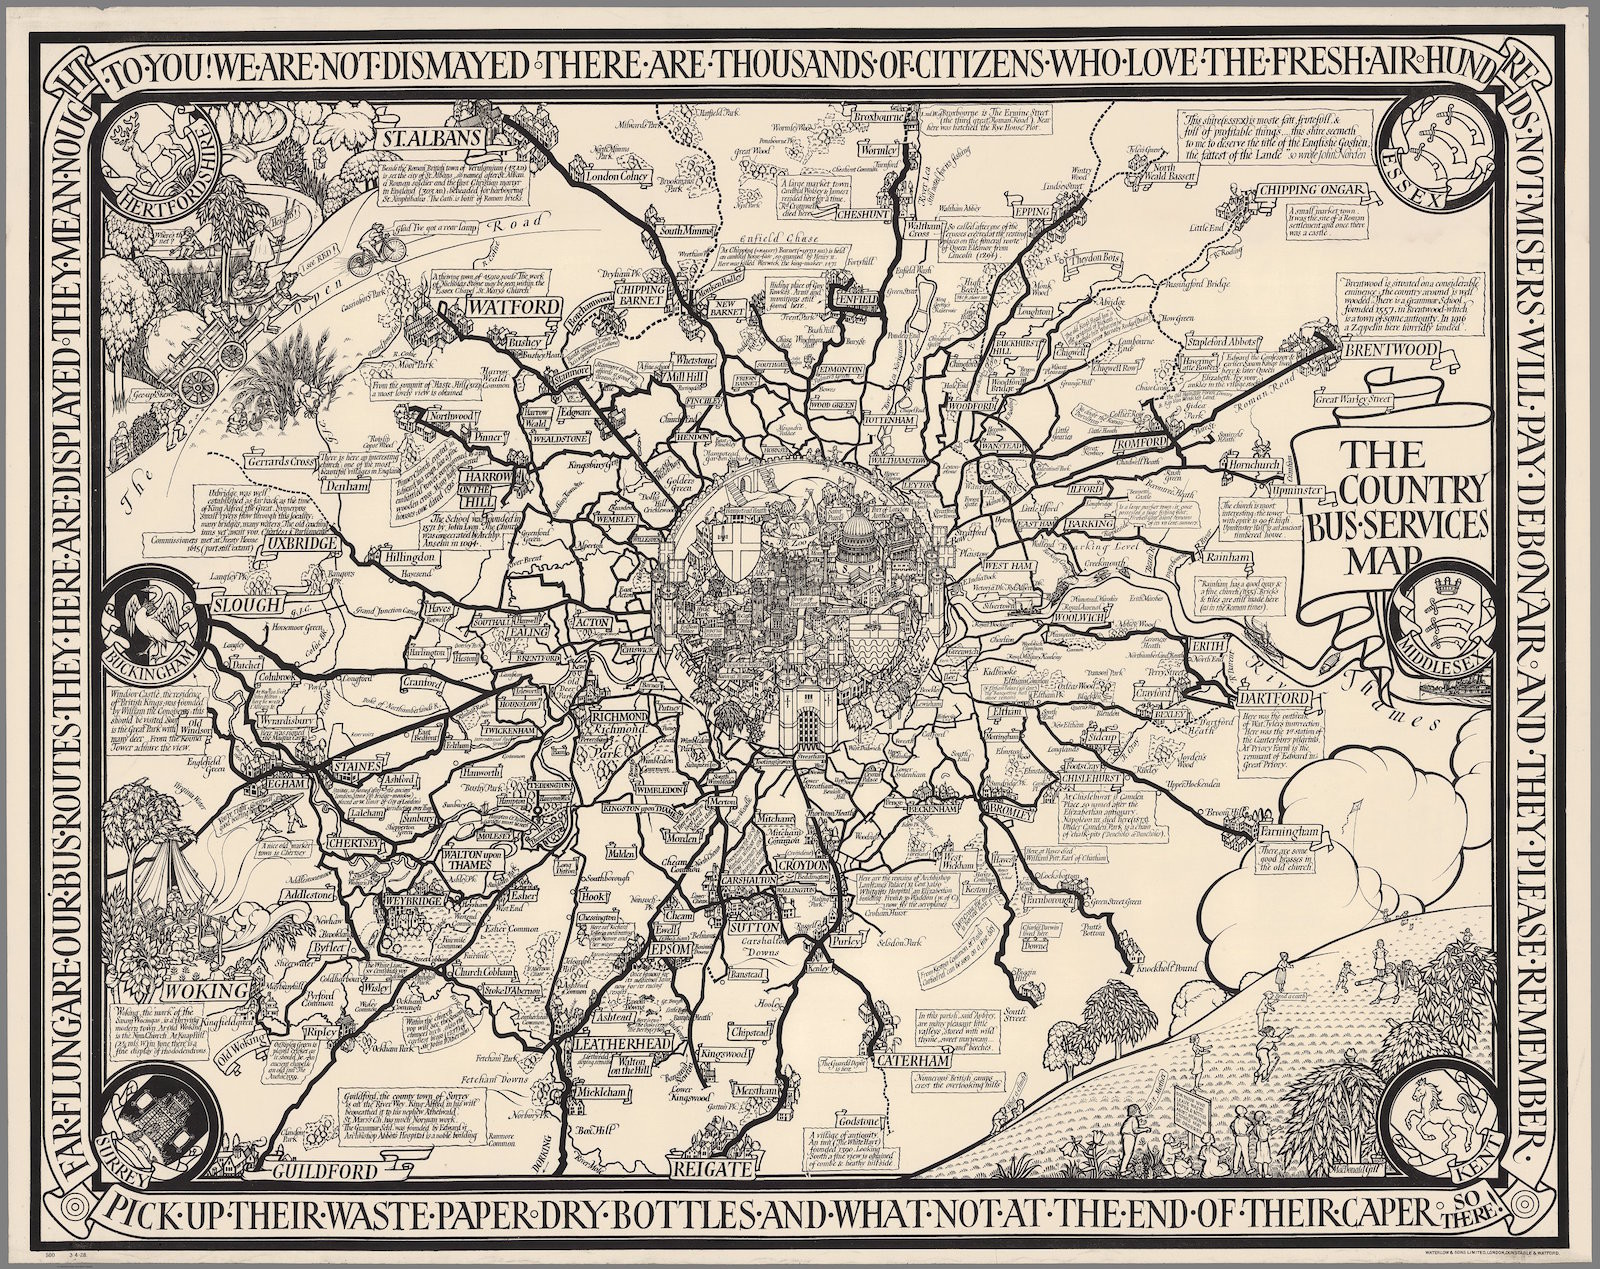 The Country Bus-Services Map, London and Vicinity, 1928. география, история, карты, наука